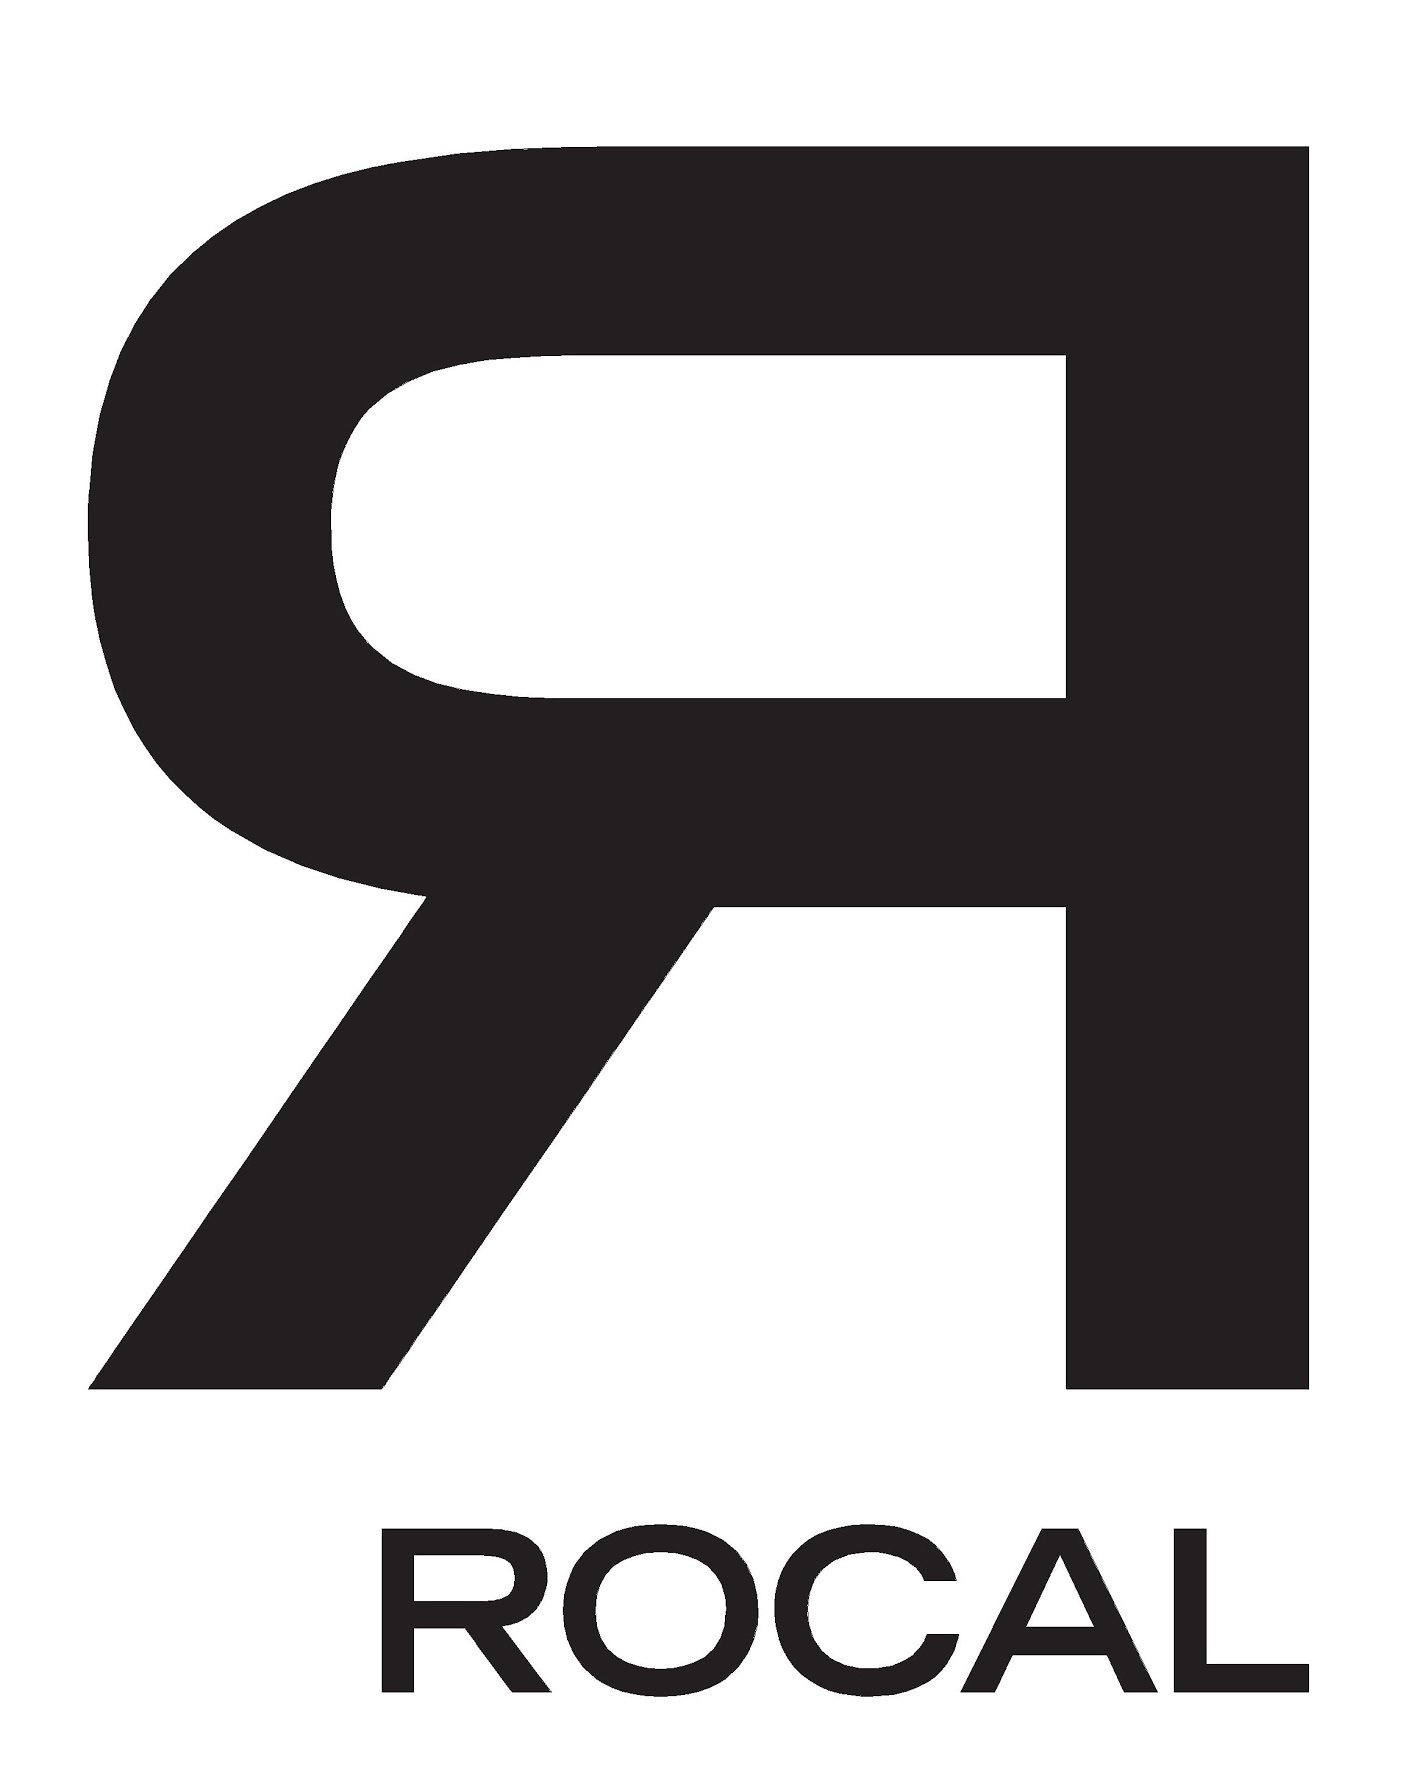 Rocal